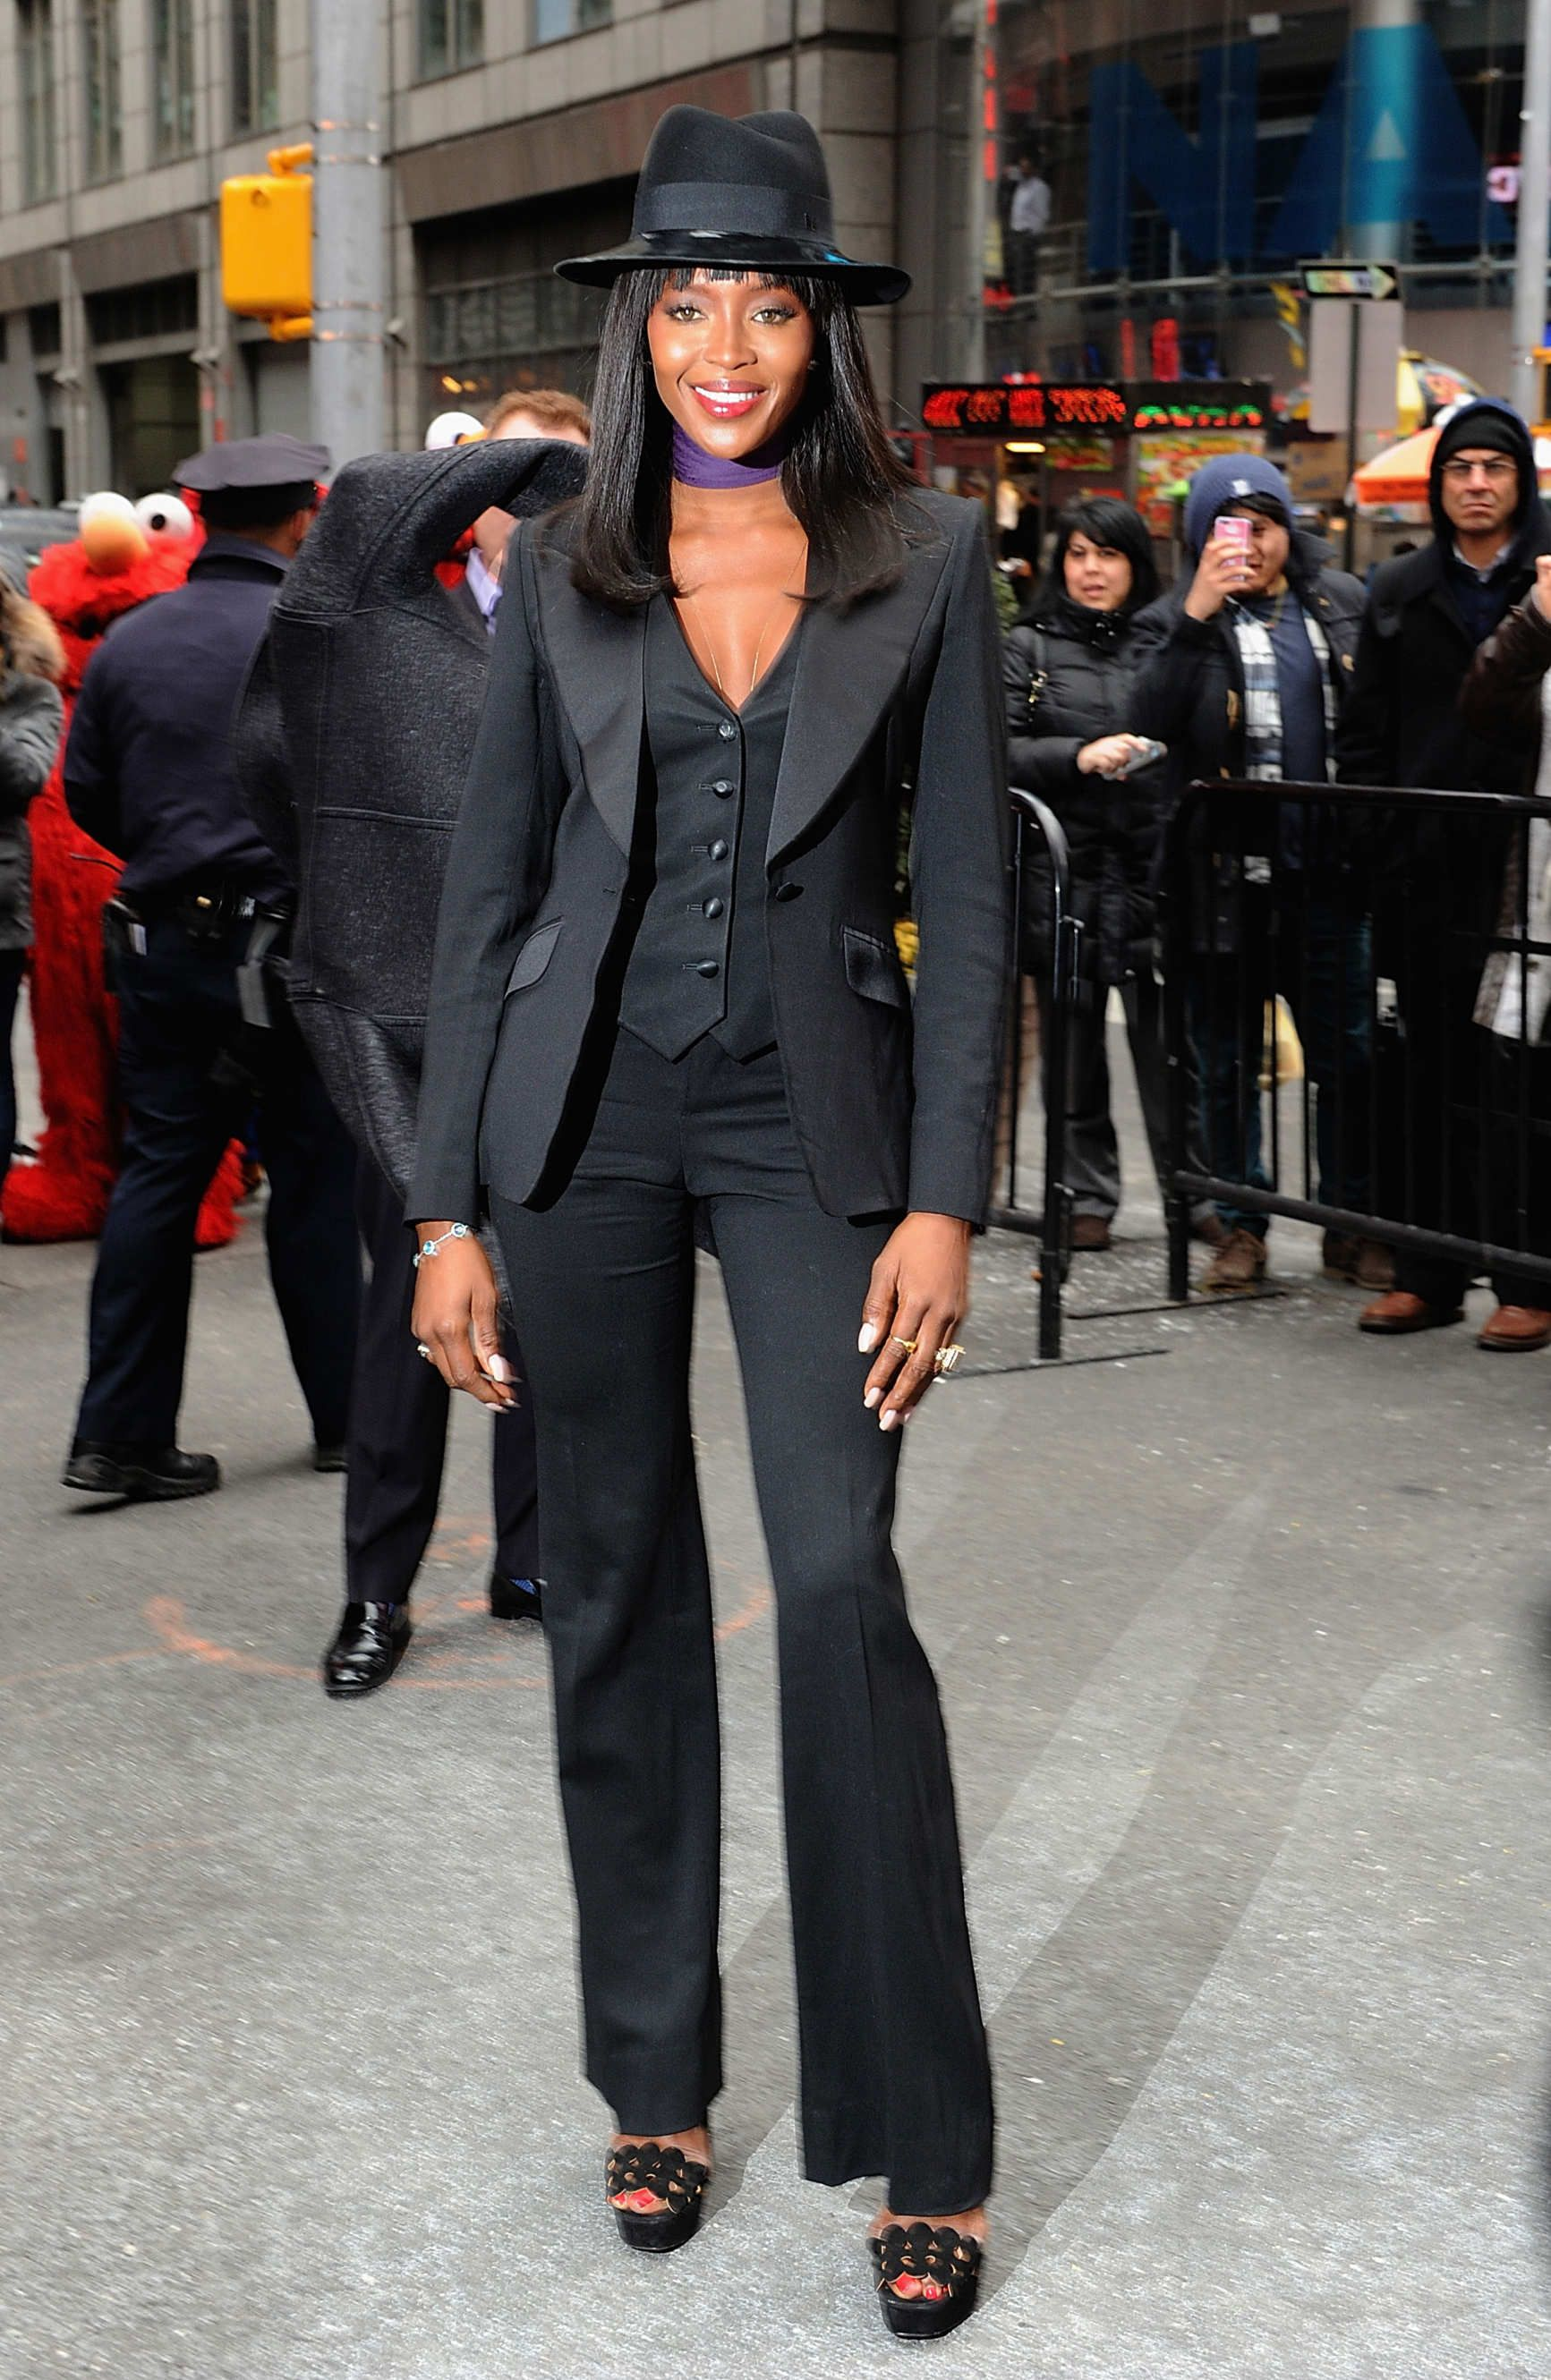 bcf7bc19a4f Le Smoking: classic and modern takes on Yves Saint Laurent's iconic ladies'  tuxedo. Naomi Campbell, 2014